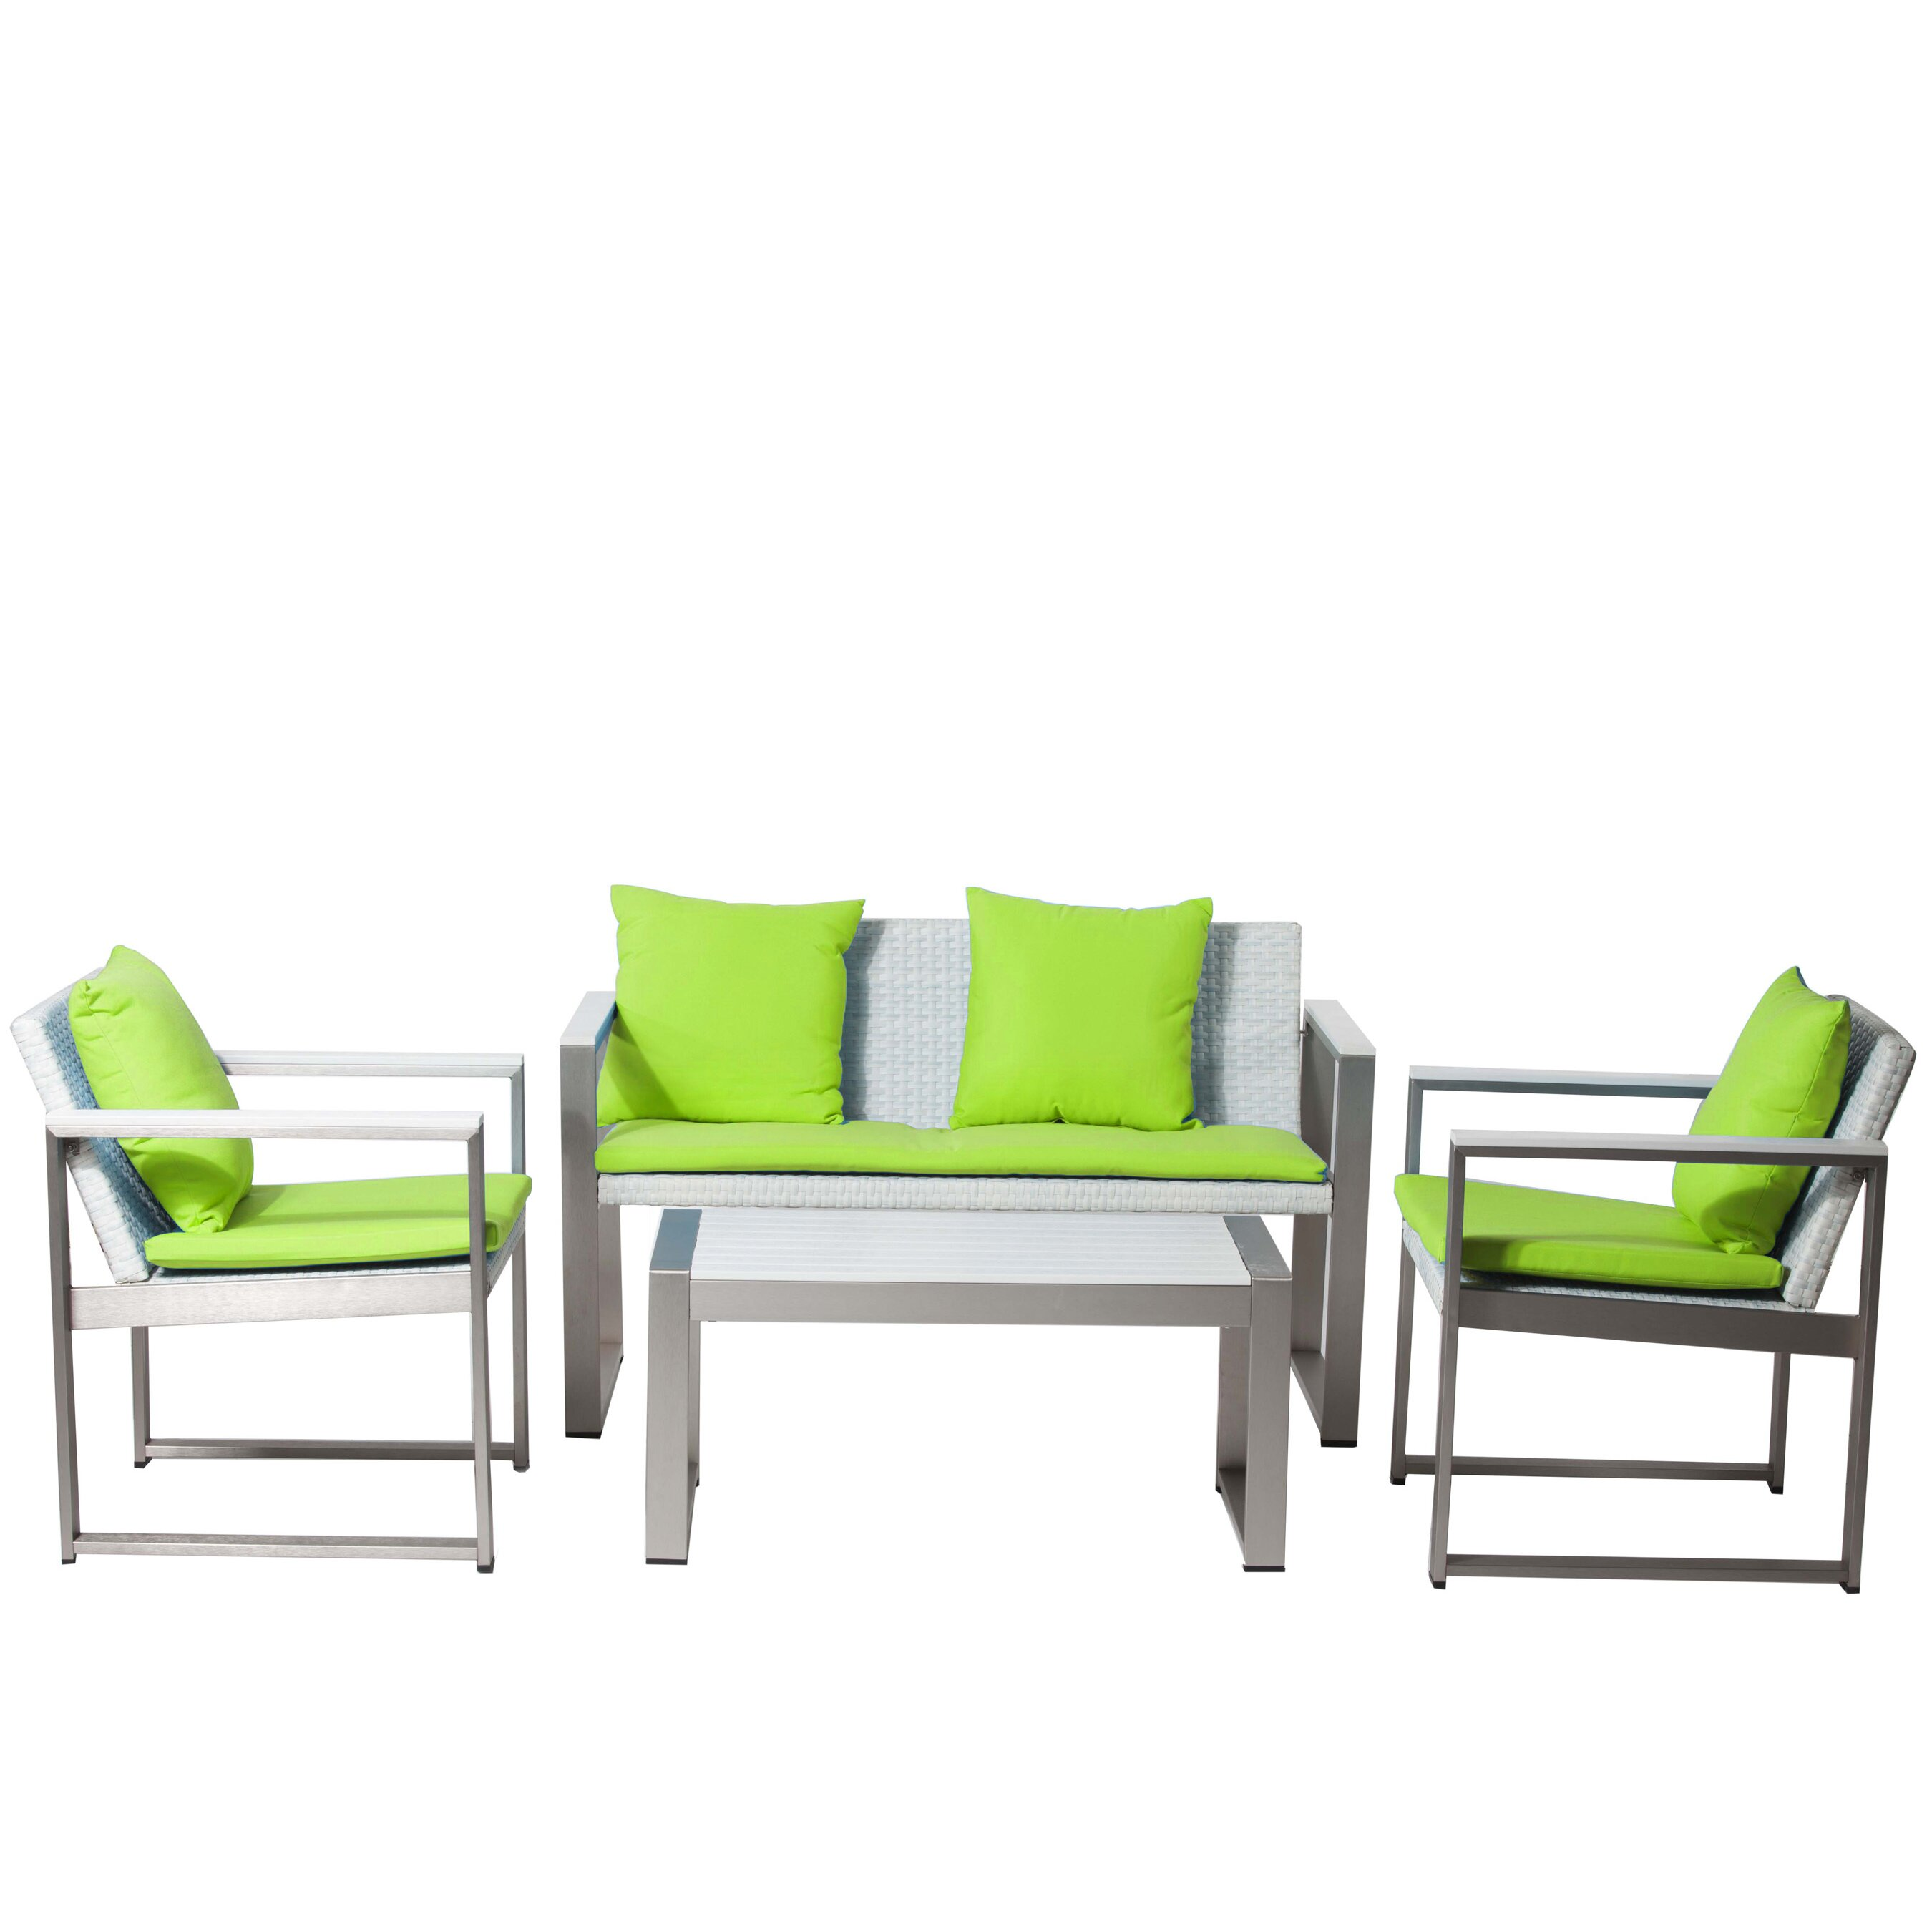 Pangea Home Chester 4 Piece Lounge Seating Group with